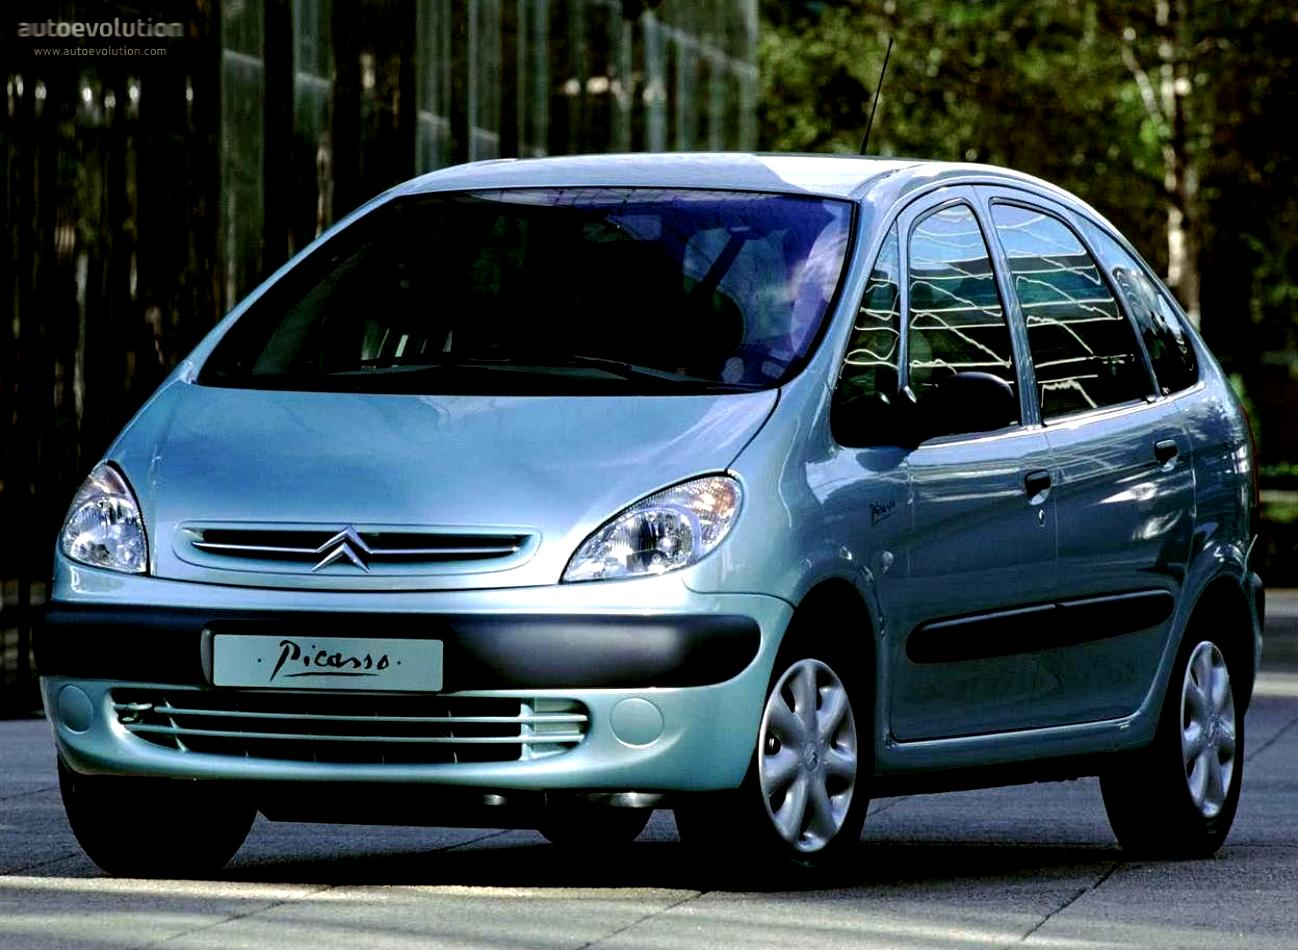 citroen xsara picasso 1999 photos 12 on. Black Bedroom Furniture Sets. Home Design Ideas